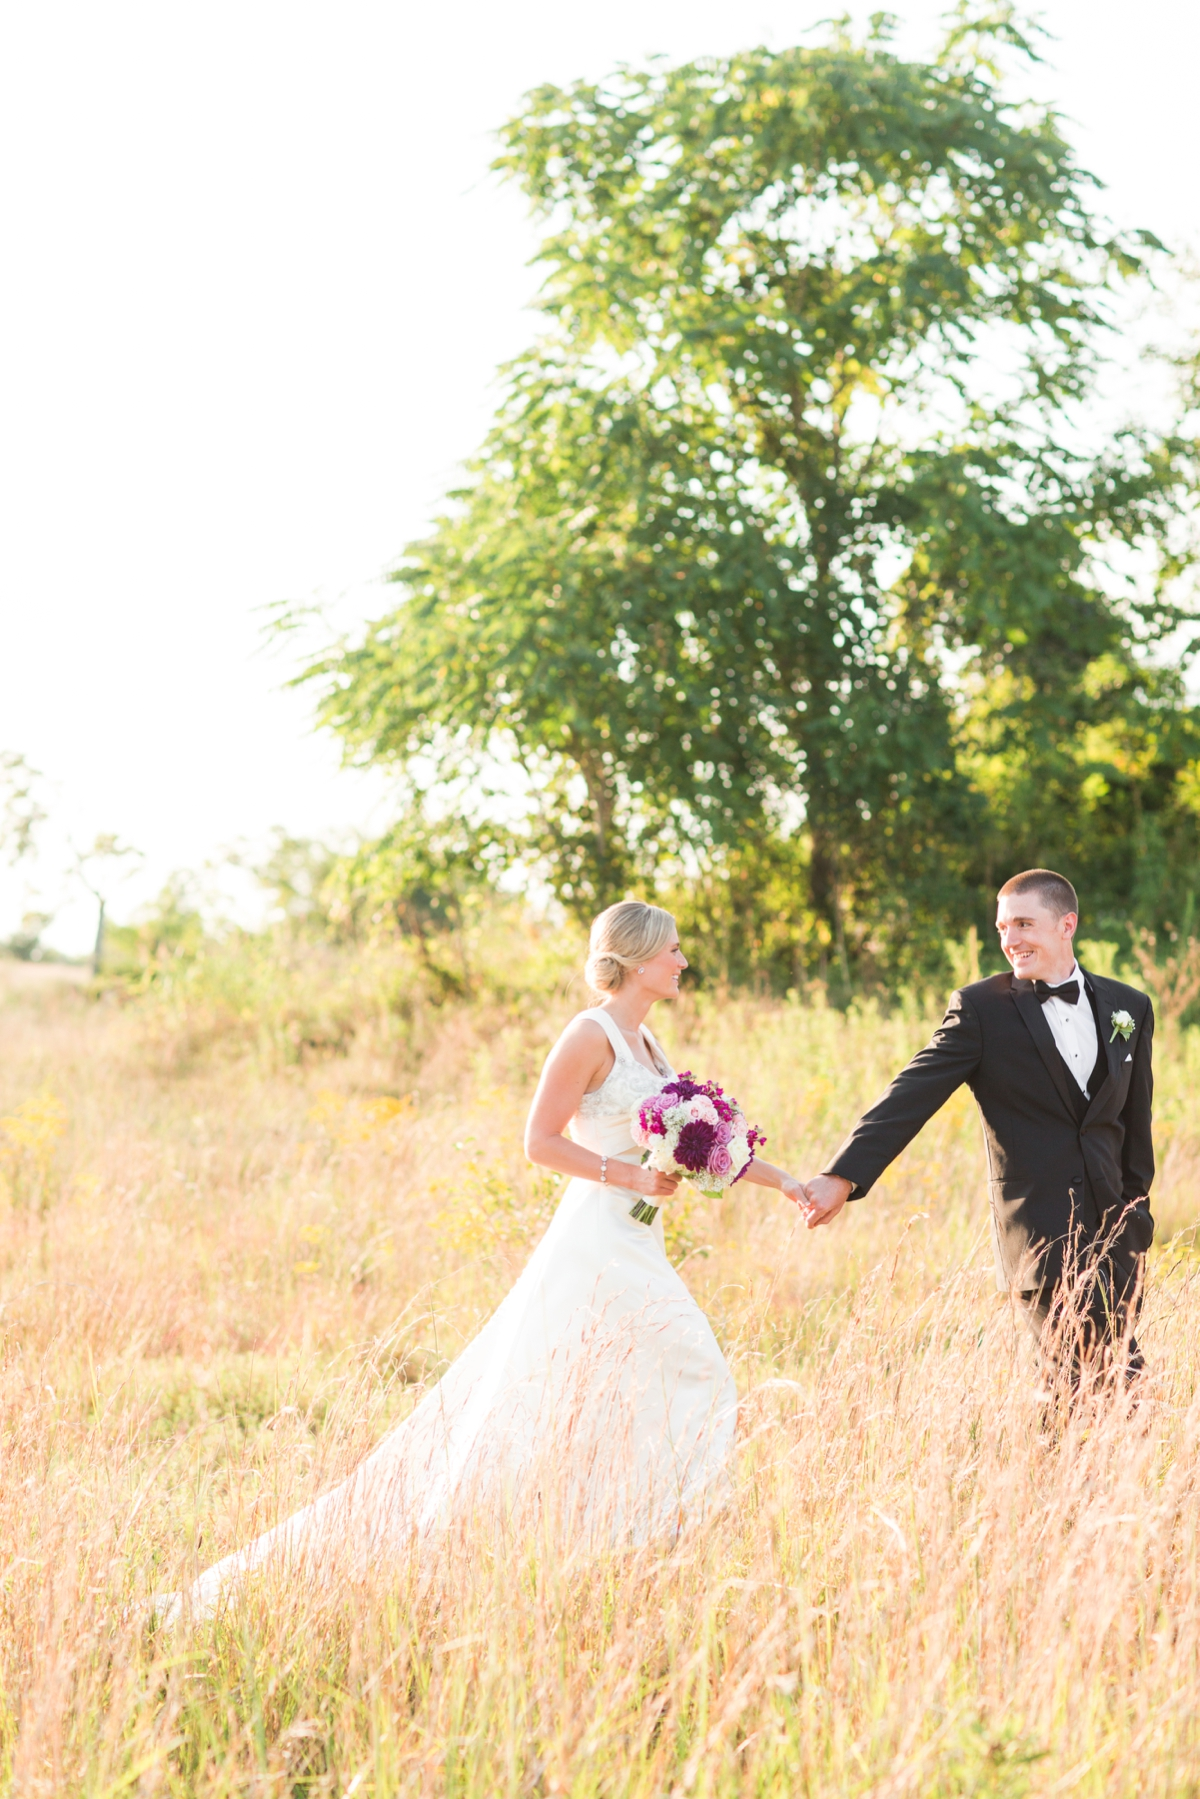 Bride and Groom Field Portraits with evening glowy light. Riverside On the Potomac Barn Wedding Photos. DC Barn Wedding. DC Farm Wedding. Outdoor Ceremony, Indoor Reception.